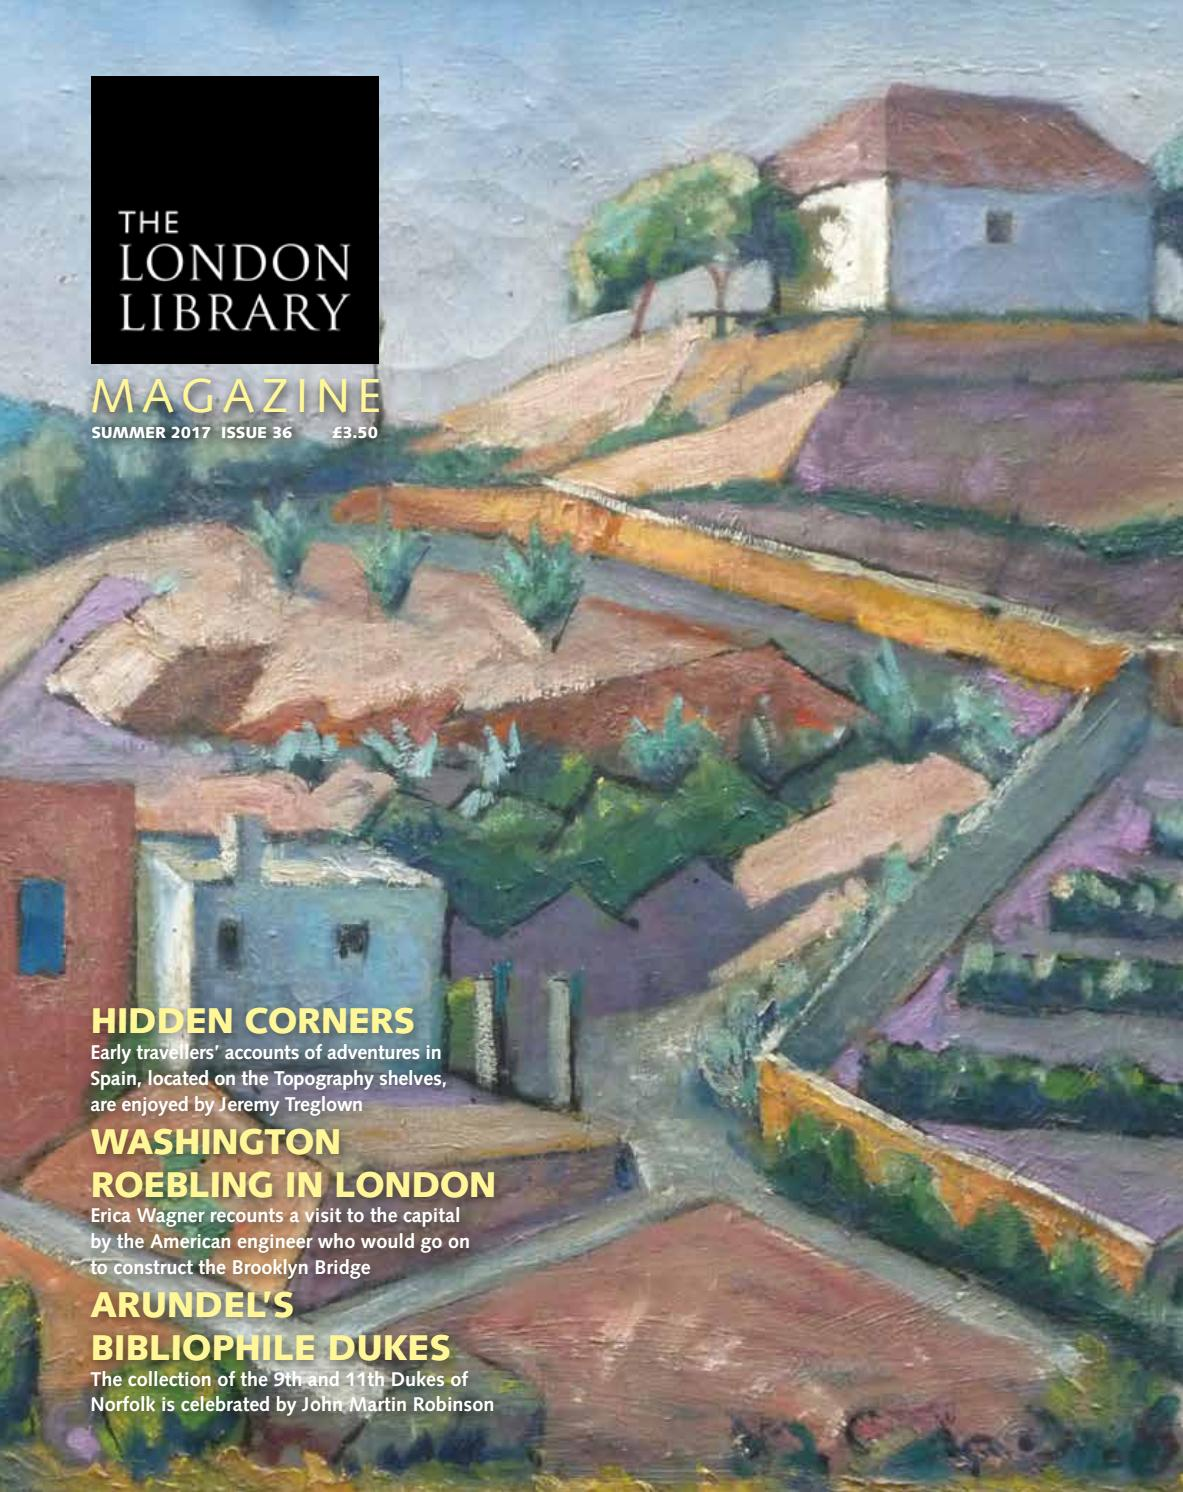 The London Library Magazine - Summer 2017 Issue 36 by The London Library -  issuu